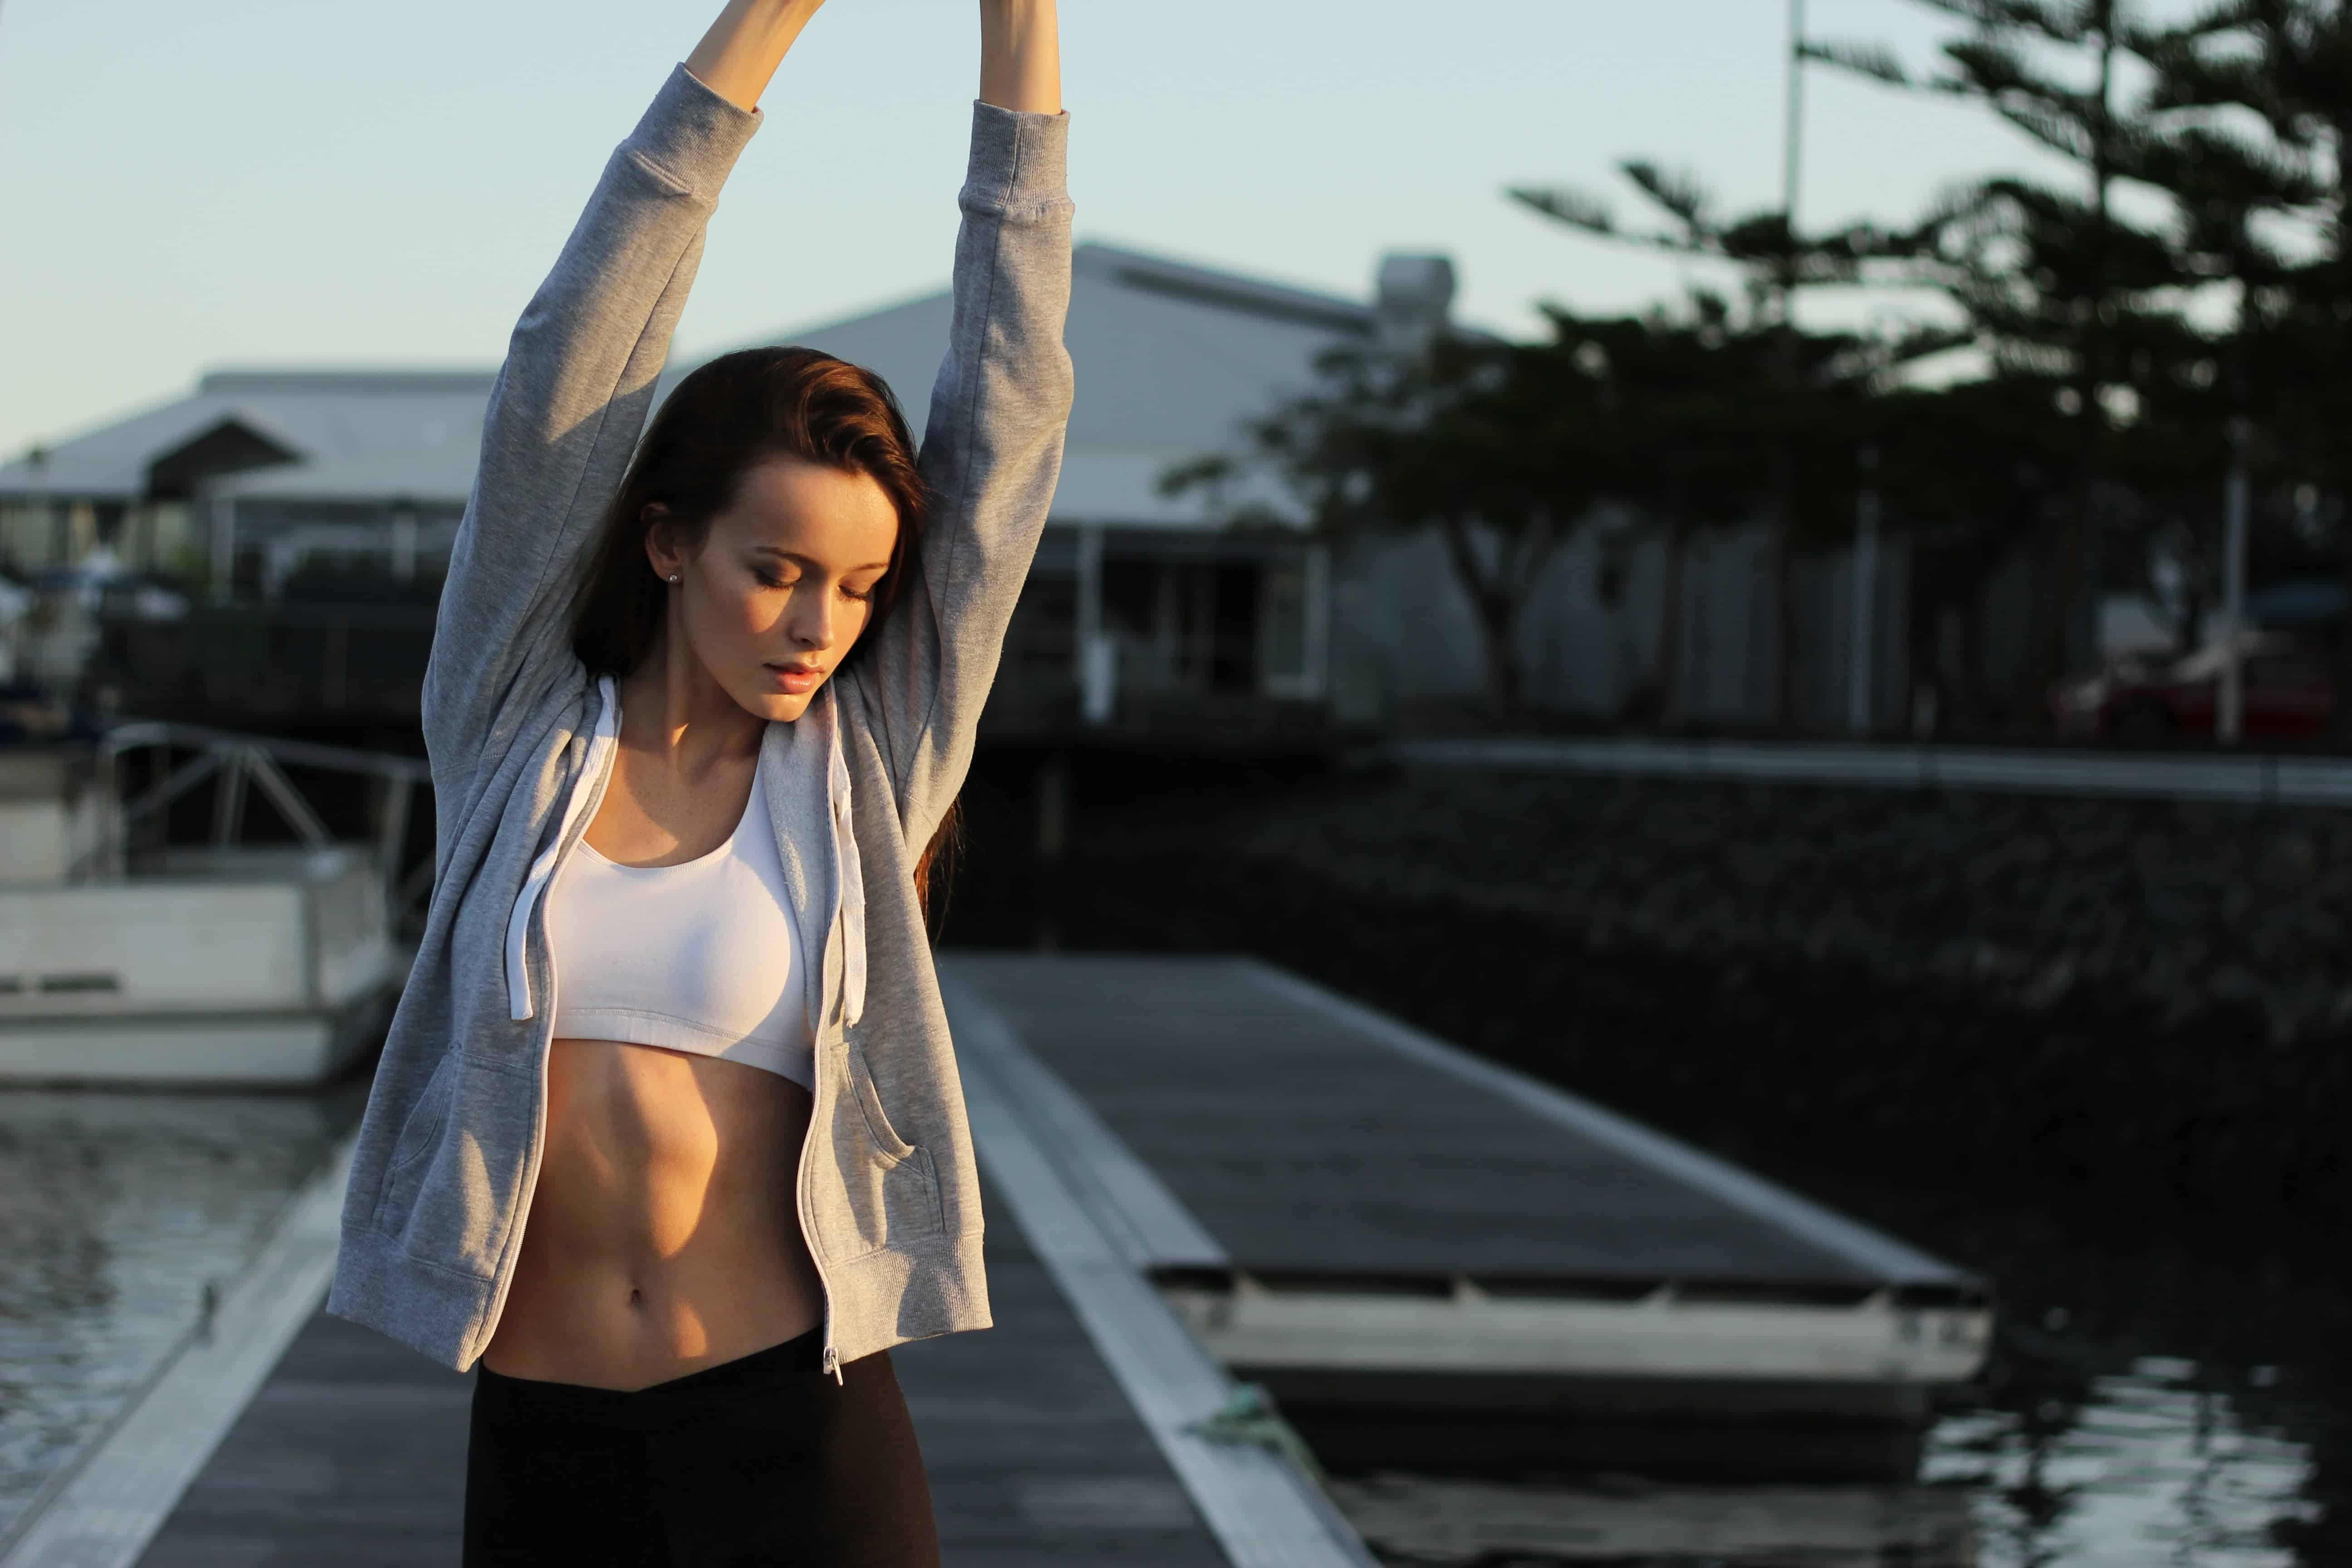 Quick workouts to increase health and happiness.